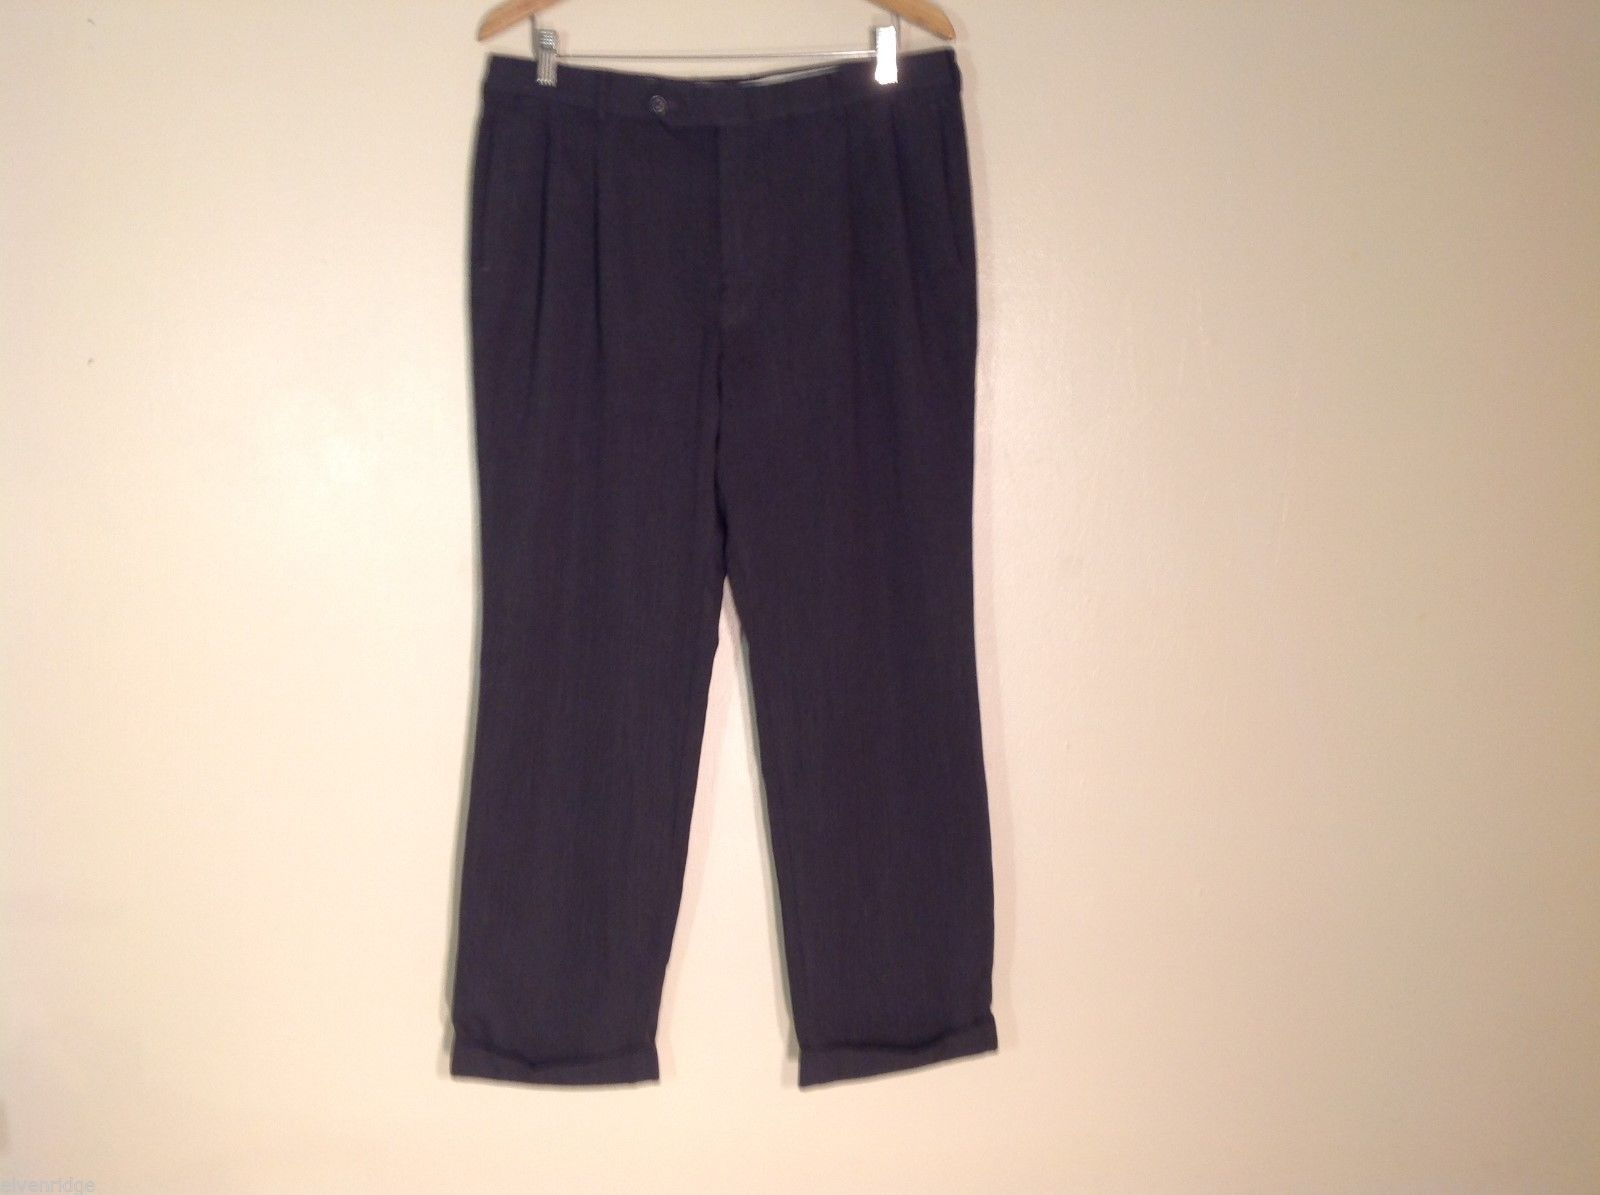 Mens Nautica Wool Charcoal Gray Dress Pants, Size 36X30